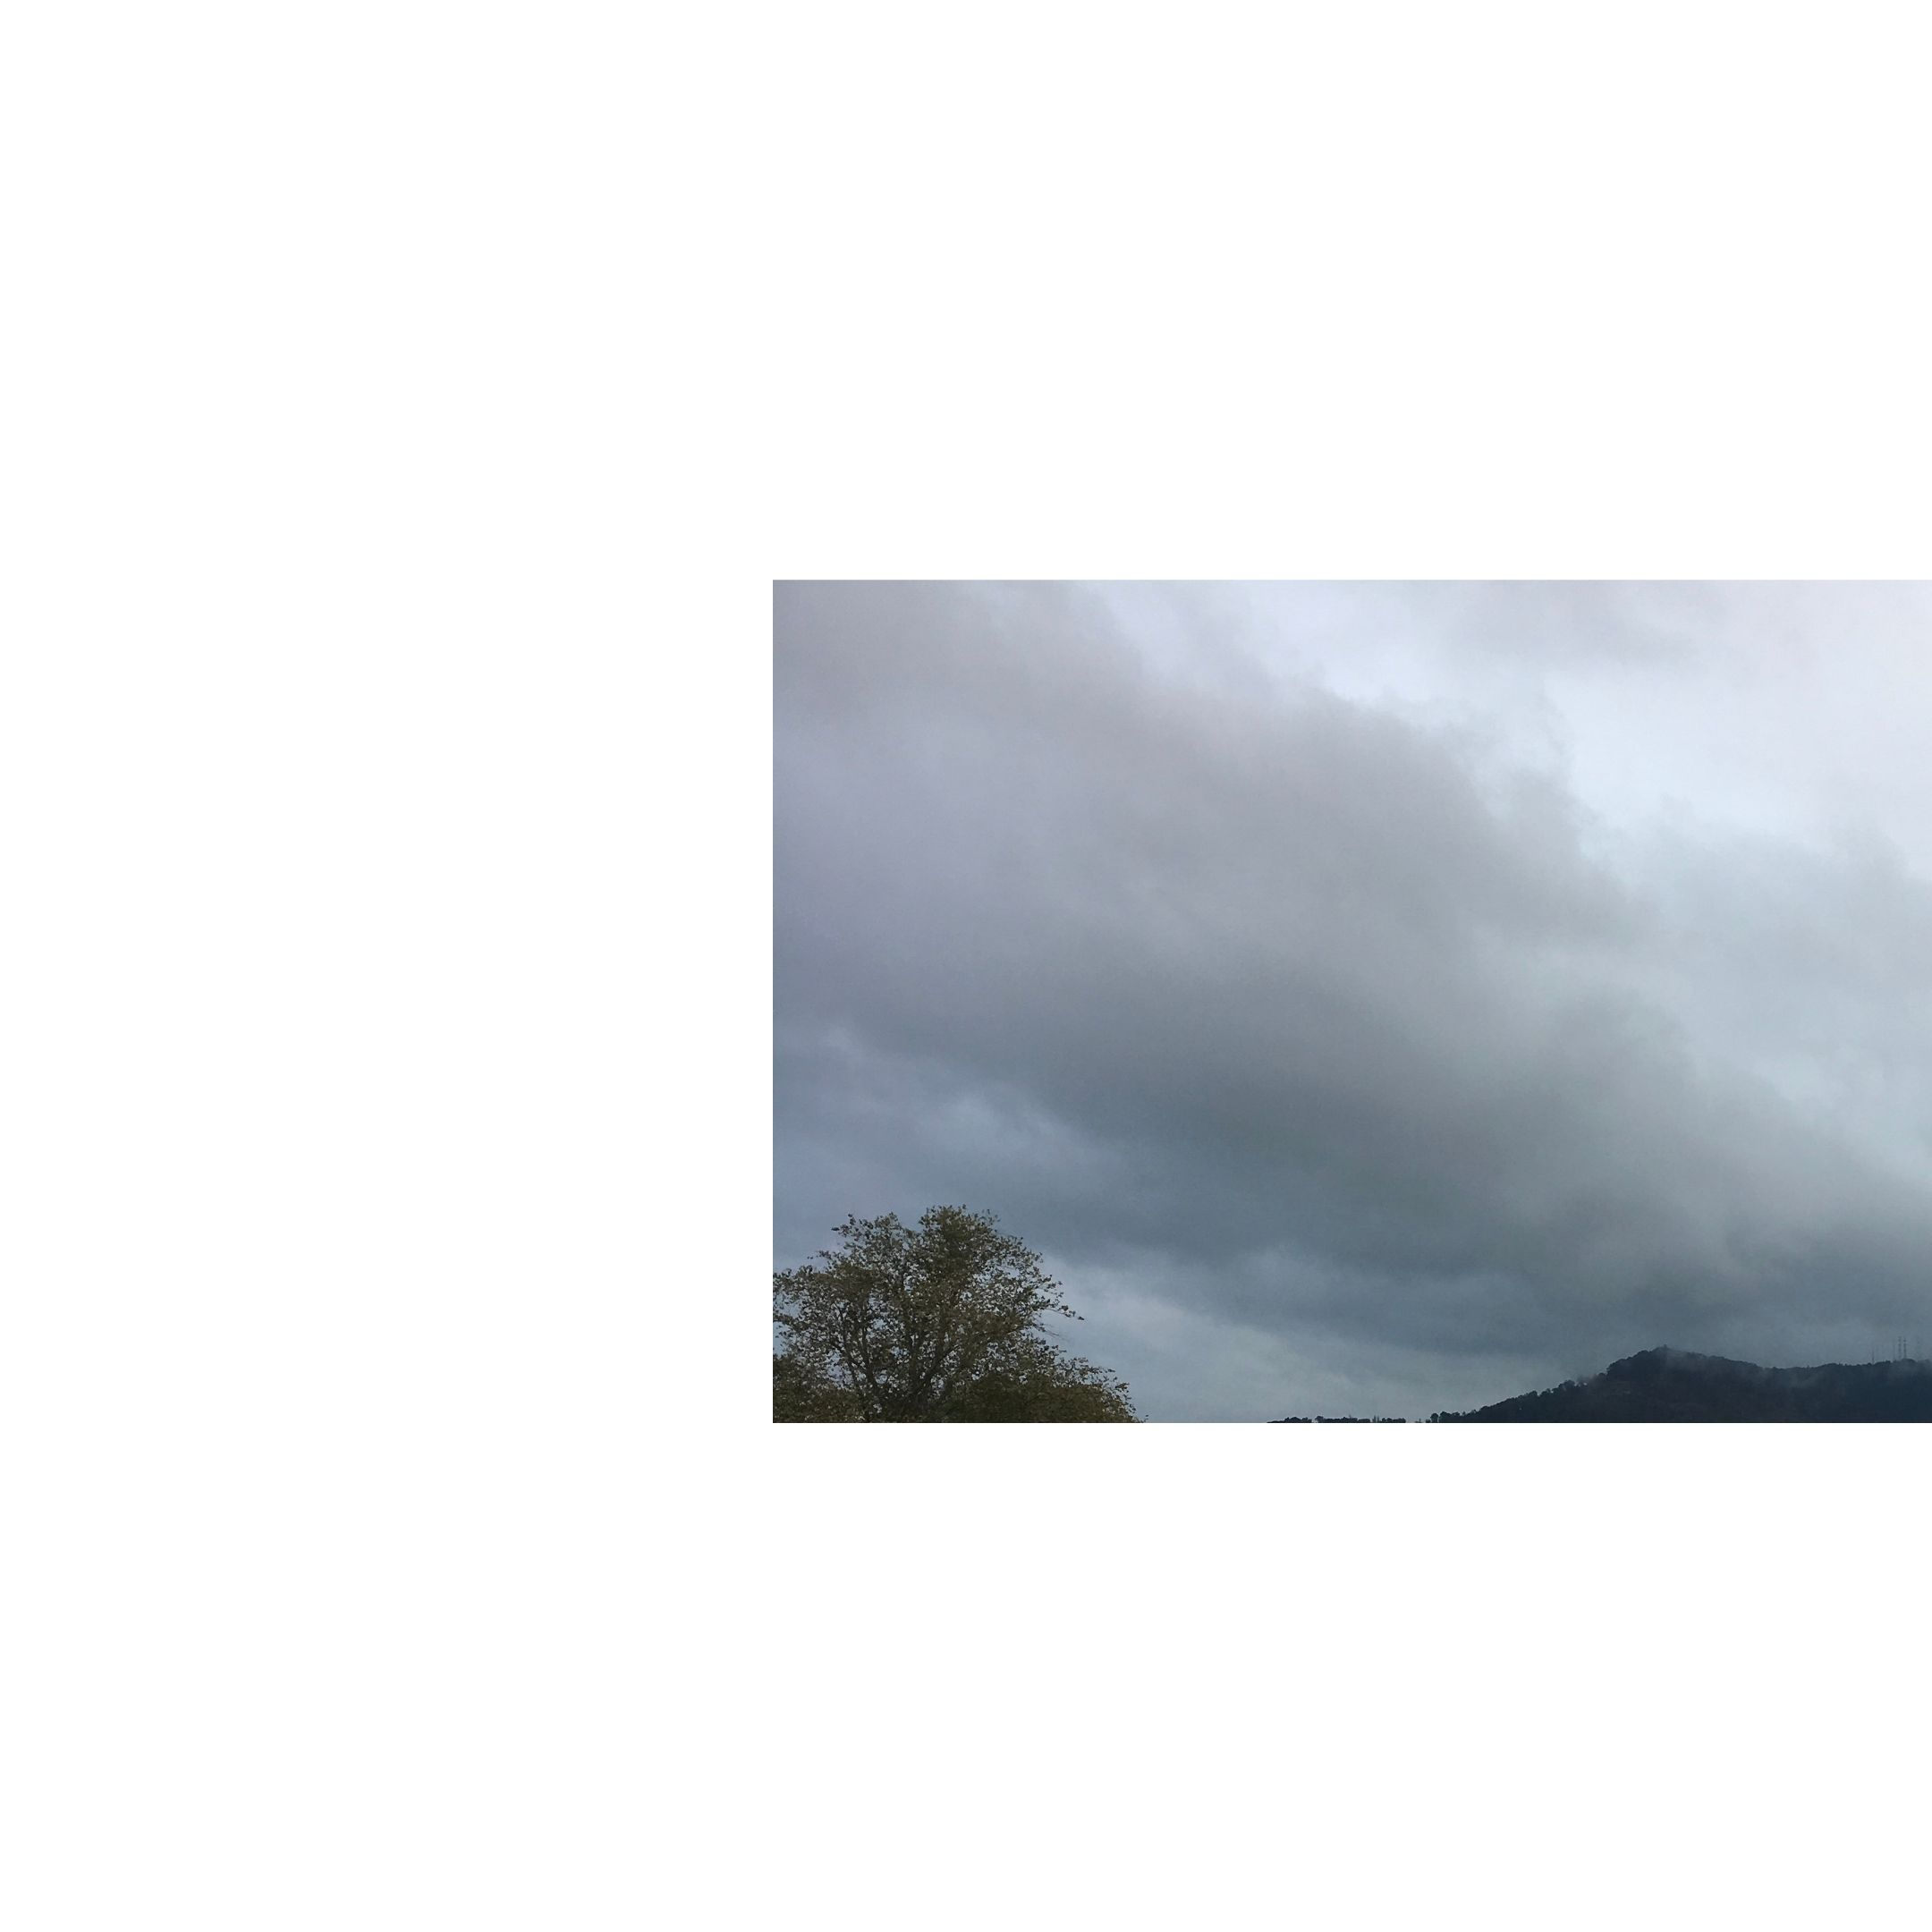 clouds and mountain top with tree